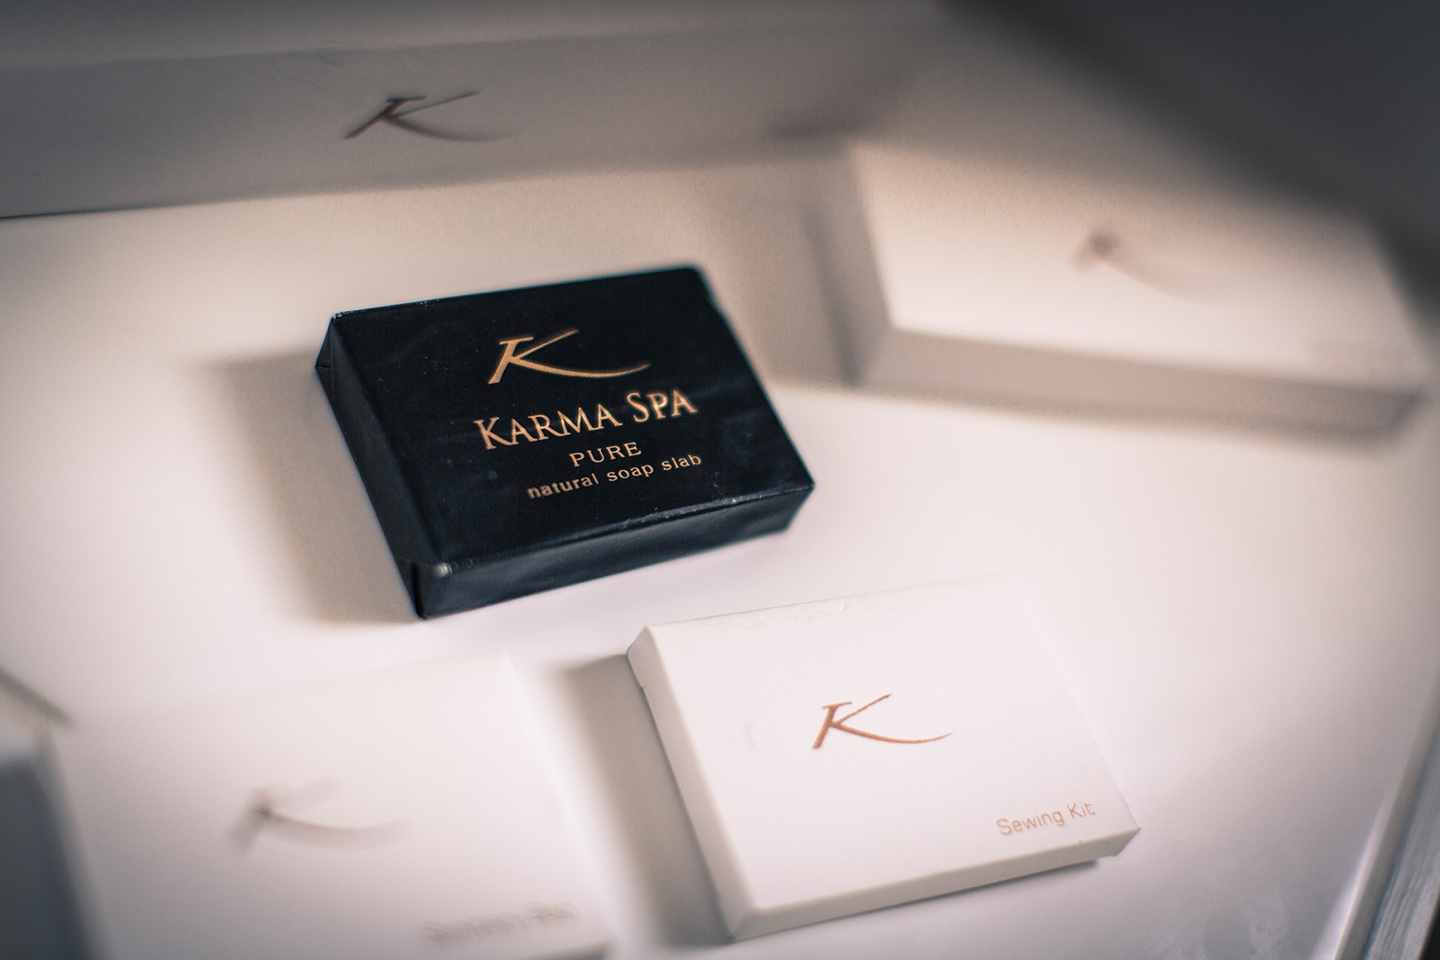 Karma Spa amenities at Karma St. Martin's